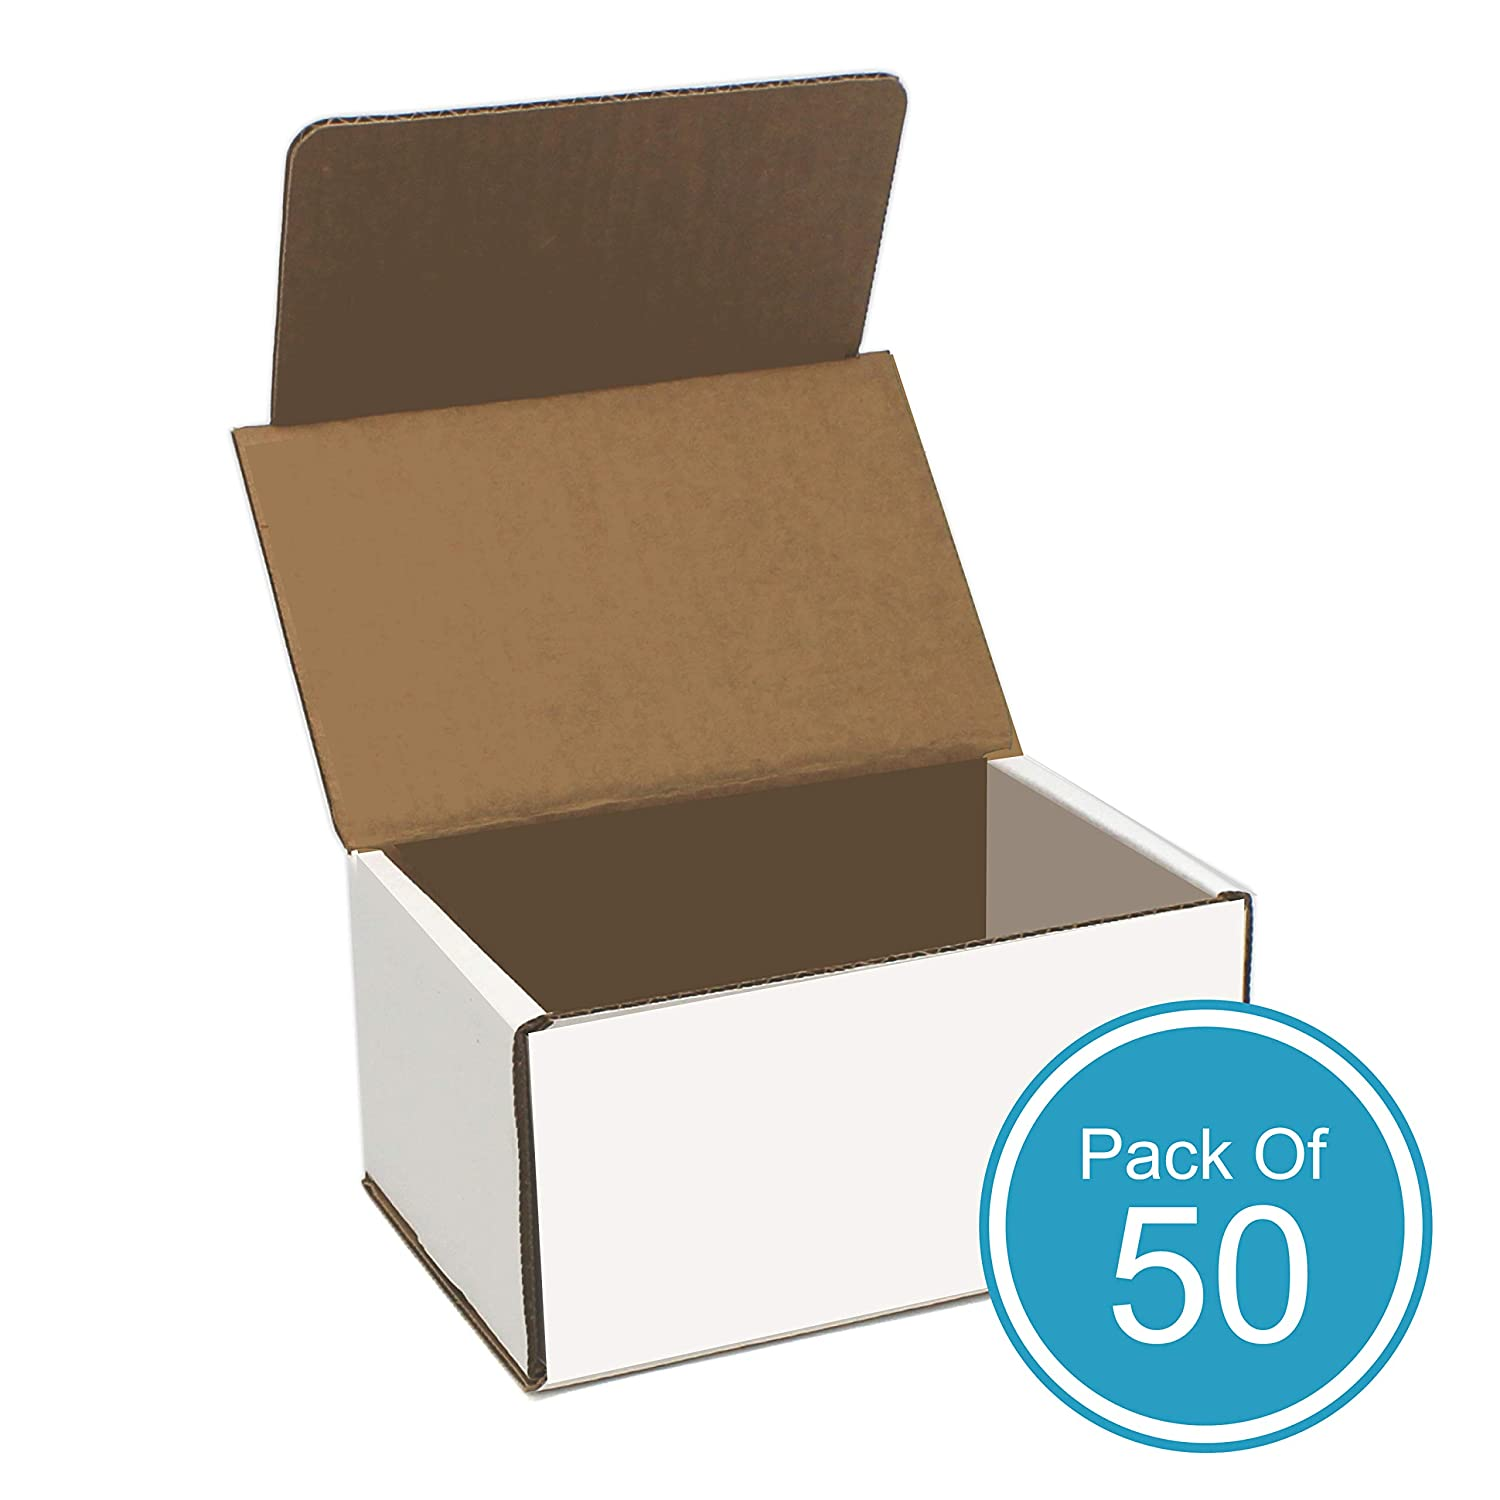 White Cardboard Shipping Box - Pack of 50, 6 x 4 x 3 Inches, White, Corrugated Box: Industrial & Scientific